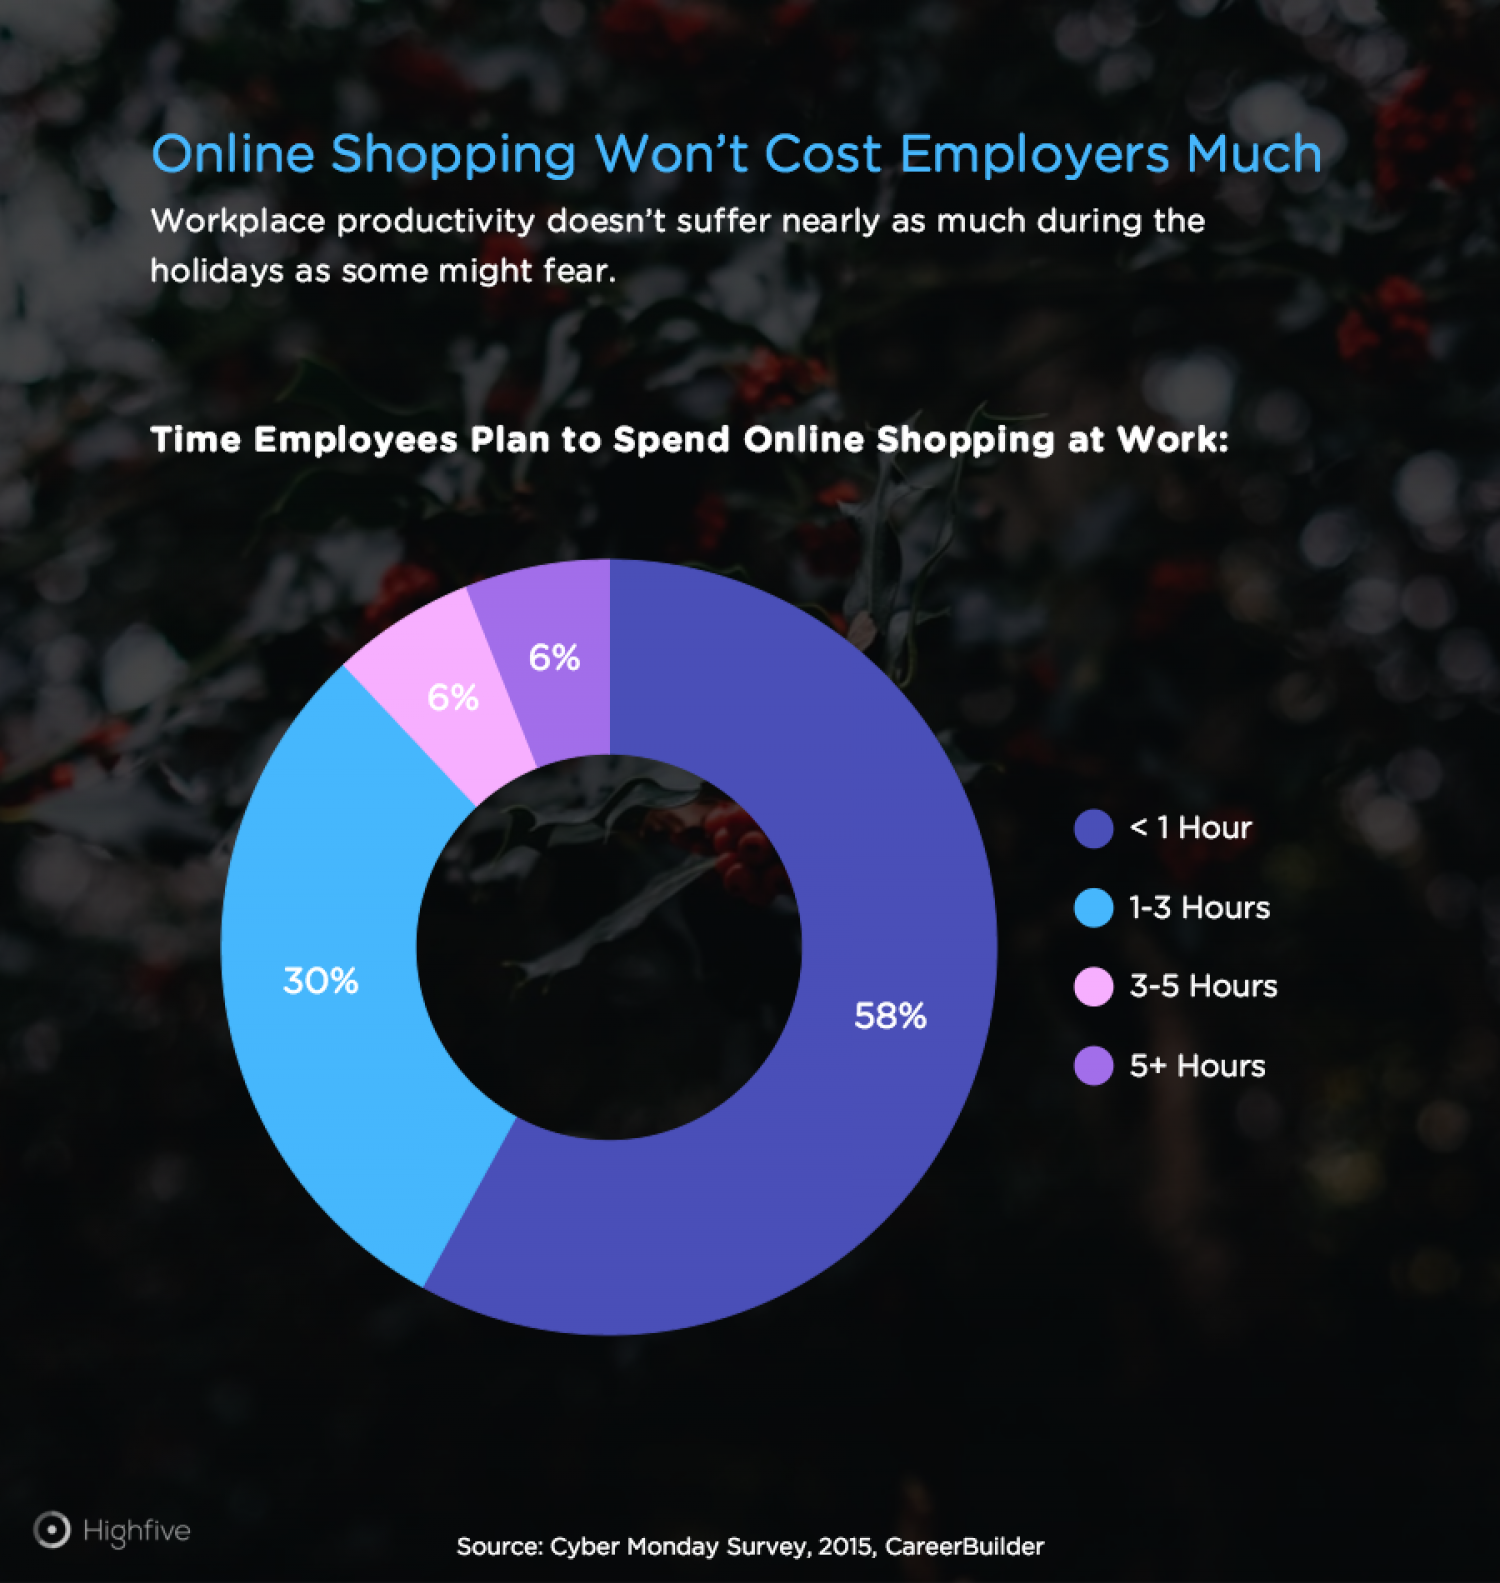 Time Spent Online Shopping at Work Infographic